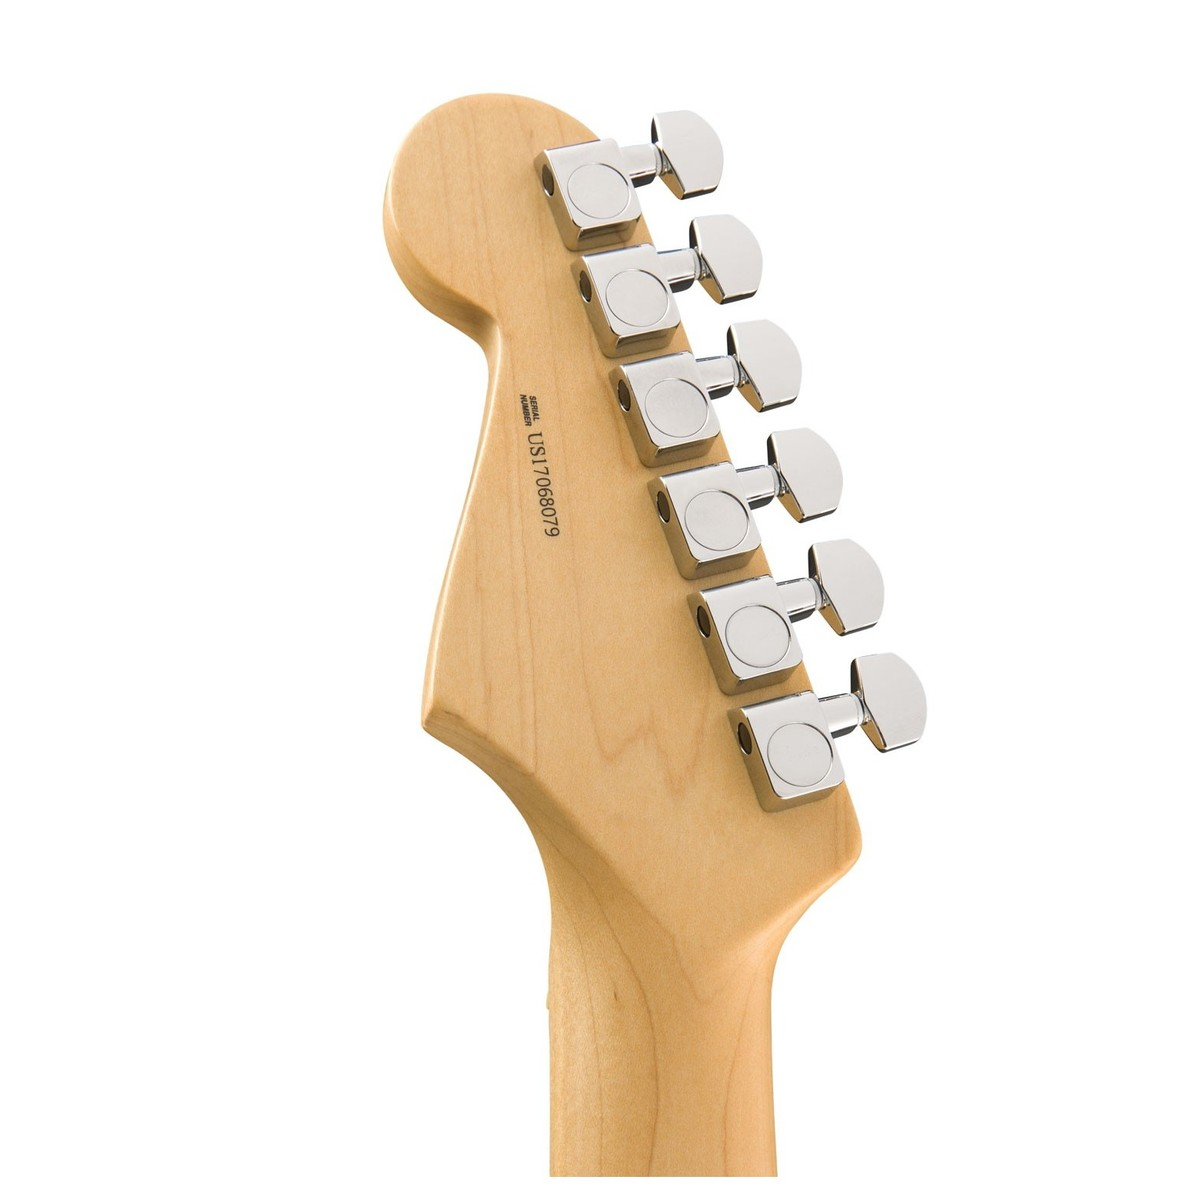 Disc Fender Ltd Strat Tele Hybrid Mn 2 Tone Sunburst At Gear4music Telecaster Style Wiring Solution For A Humbucker Limited Edition Loading Zoom